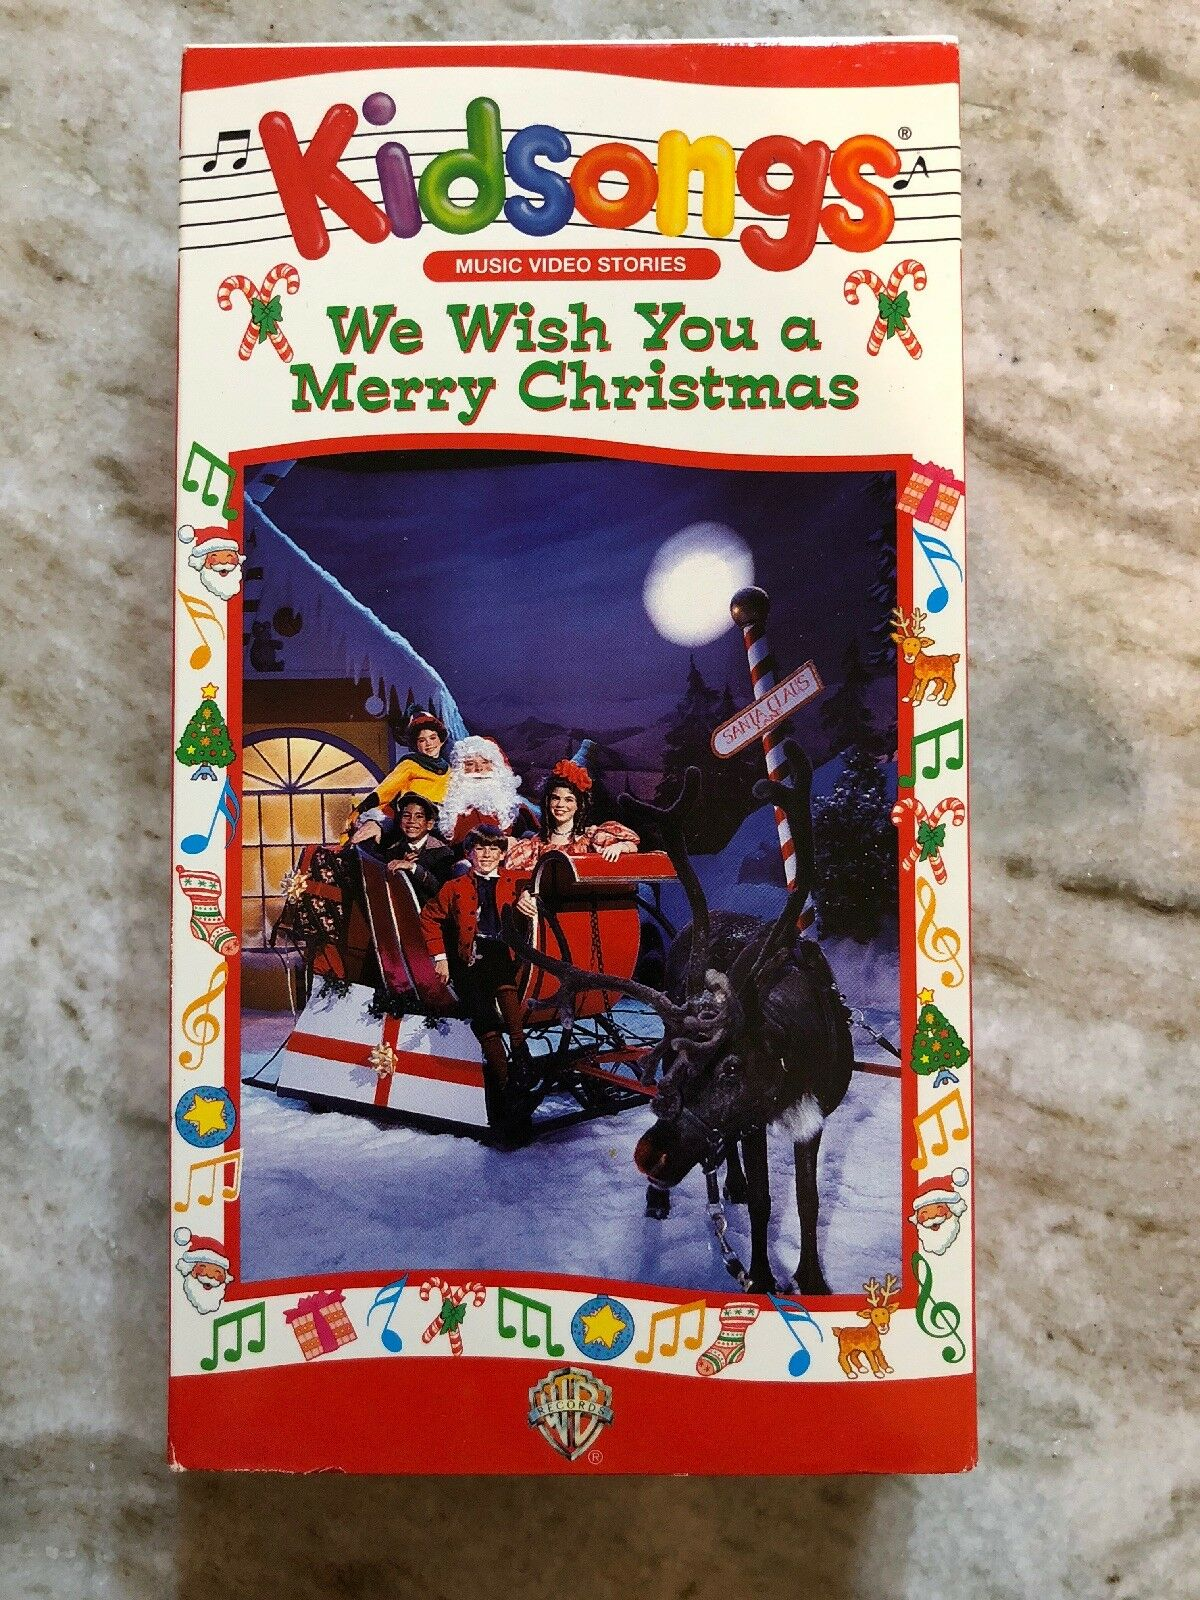 Kidsongs - We Wish You a Merry Christmas (VHS) | eBay